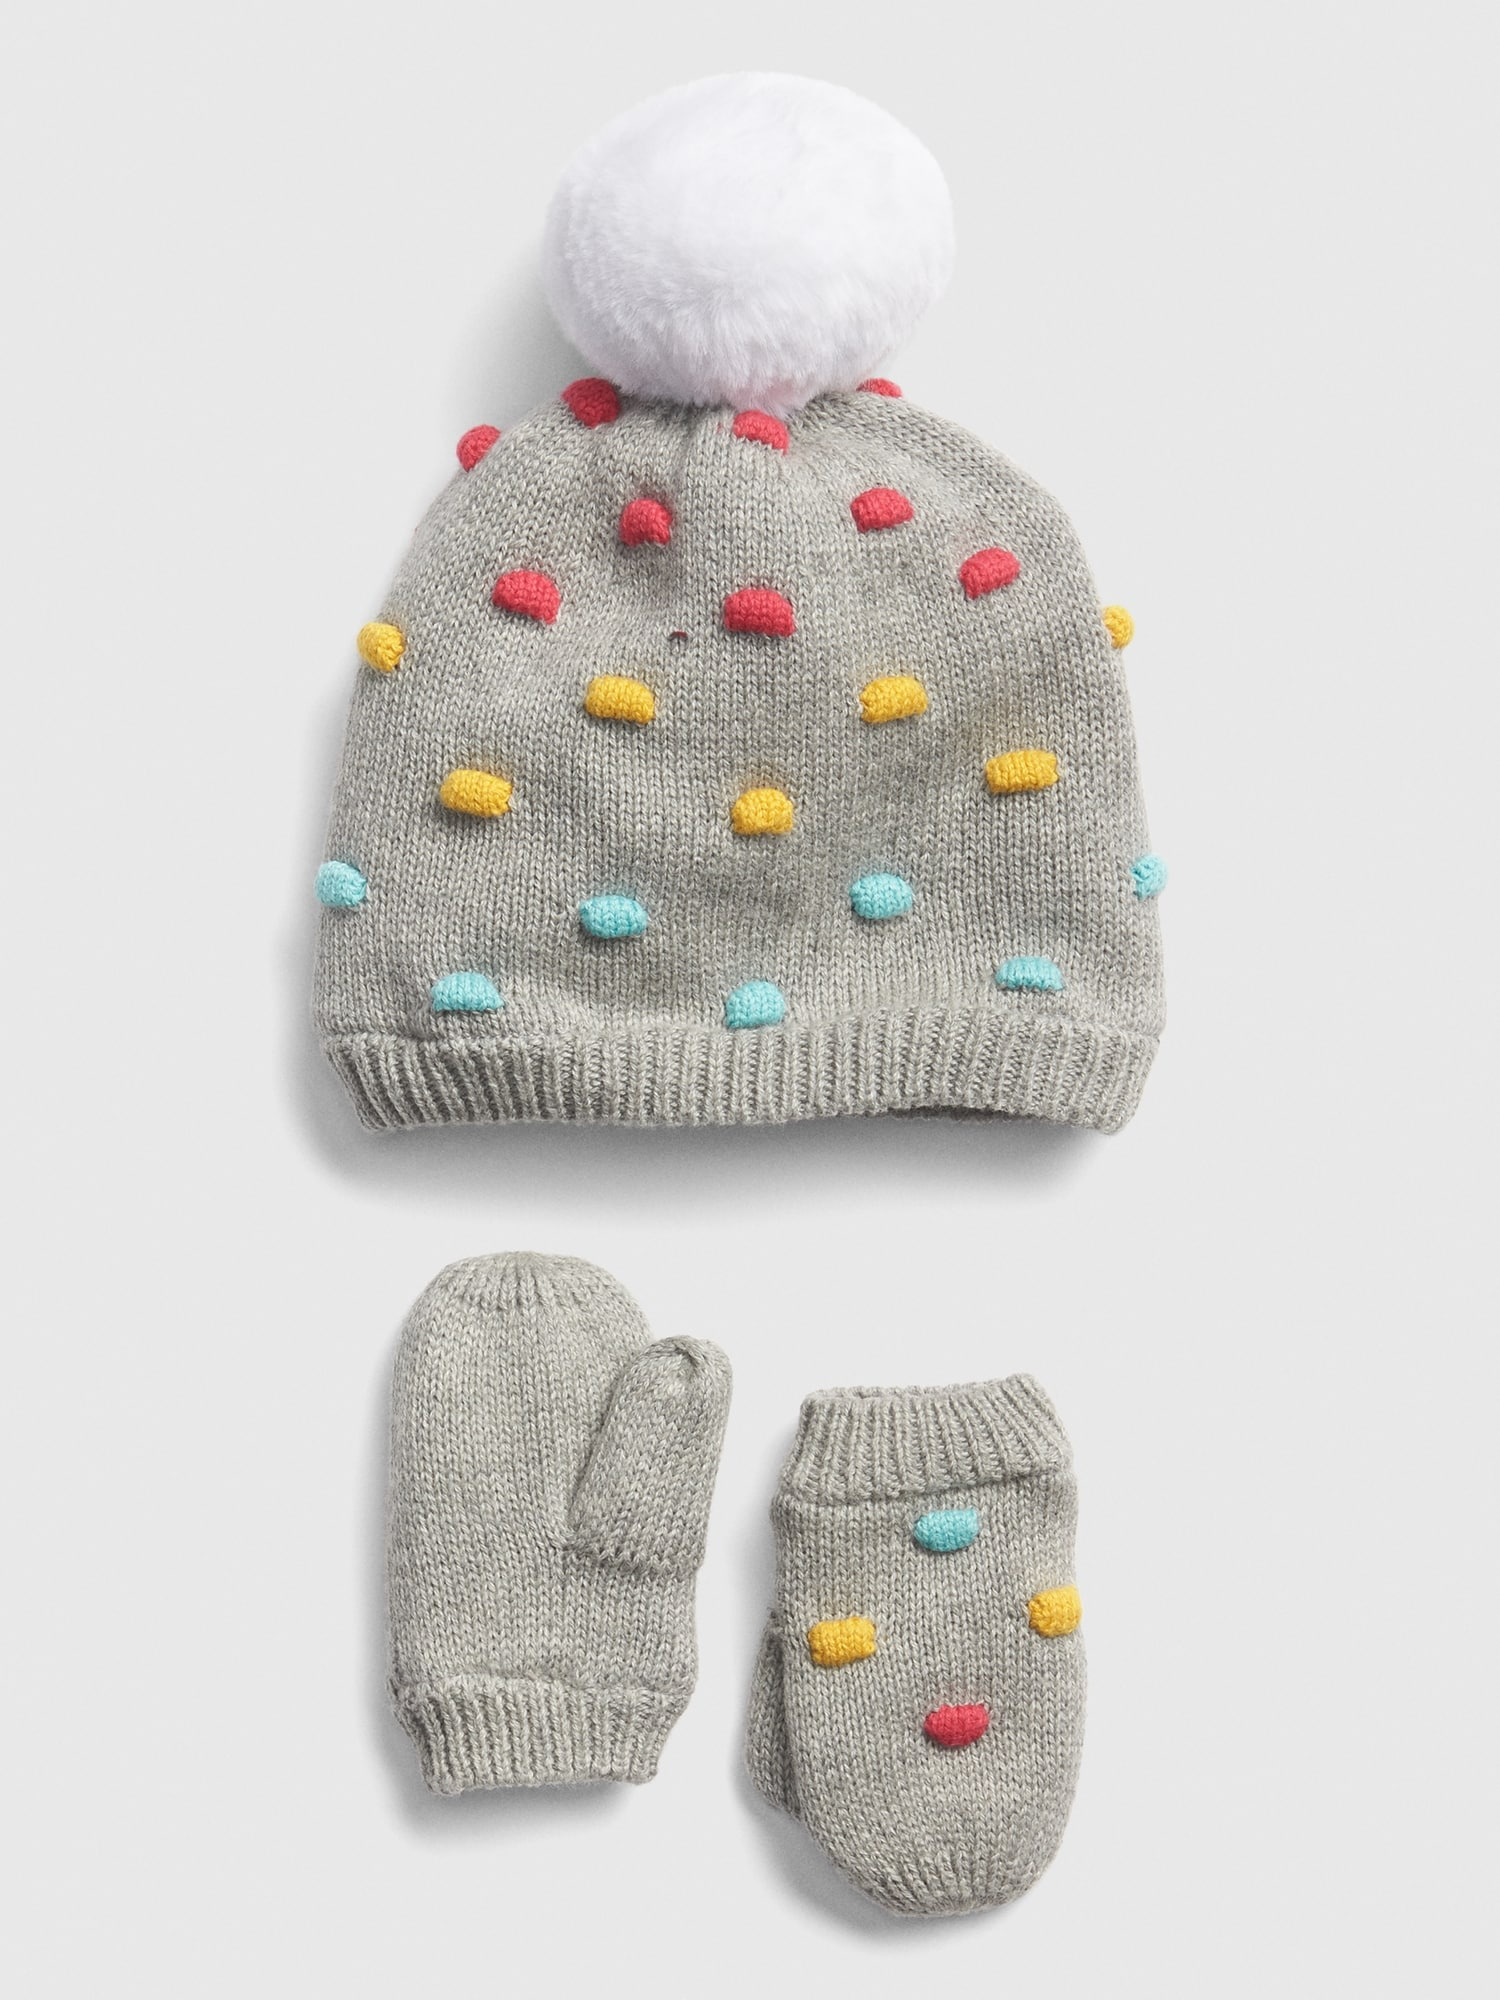 GAP Baby Toddler Boy Girl Size 12-18 Months Ivory Cable Knit Beanie Sweater Hat